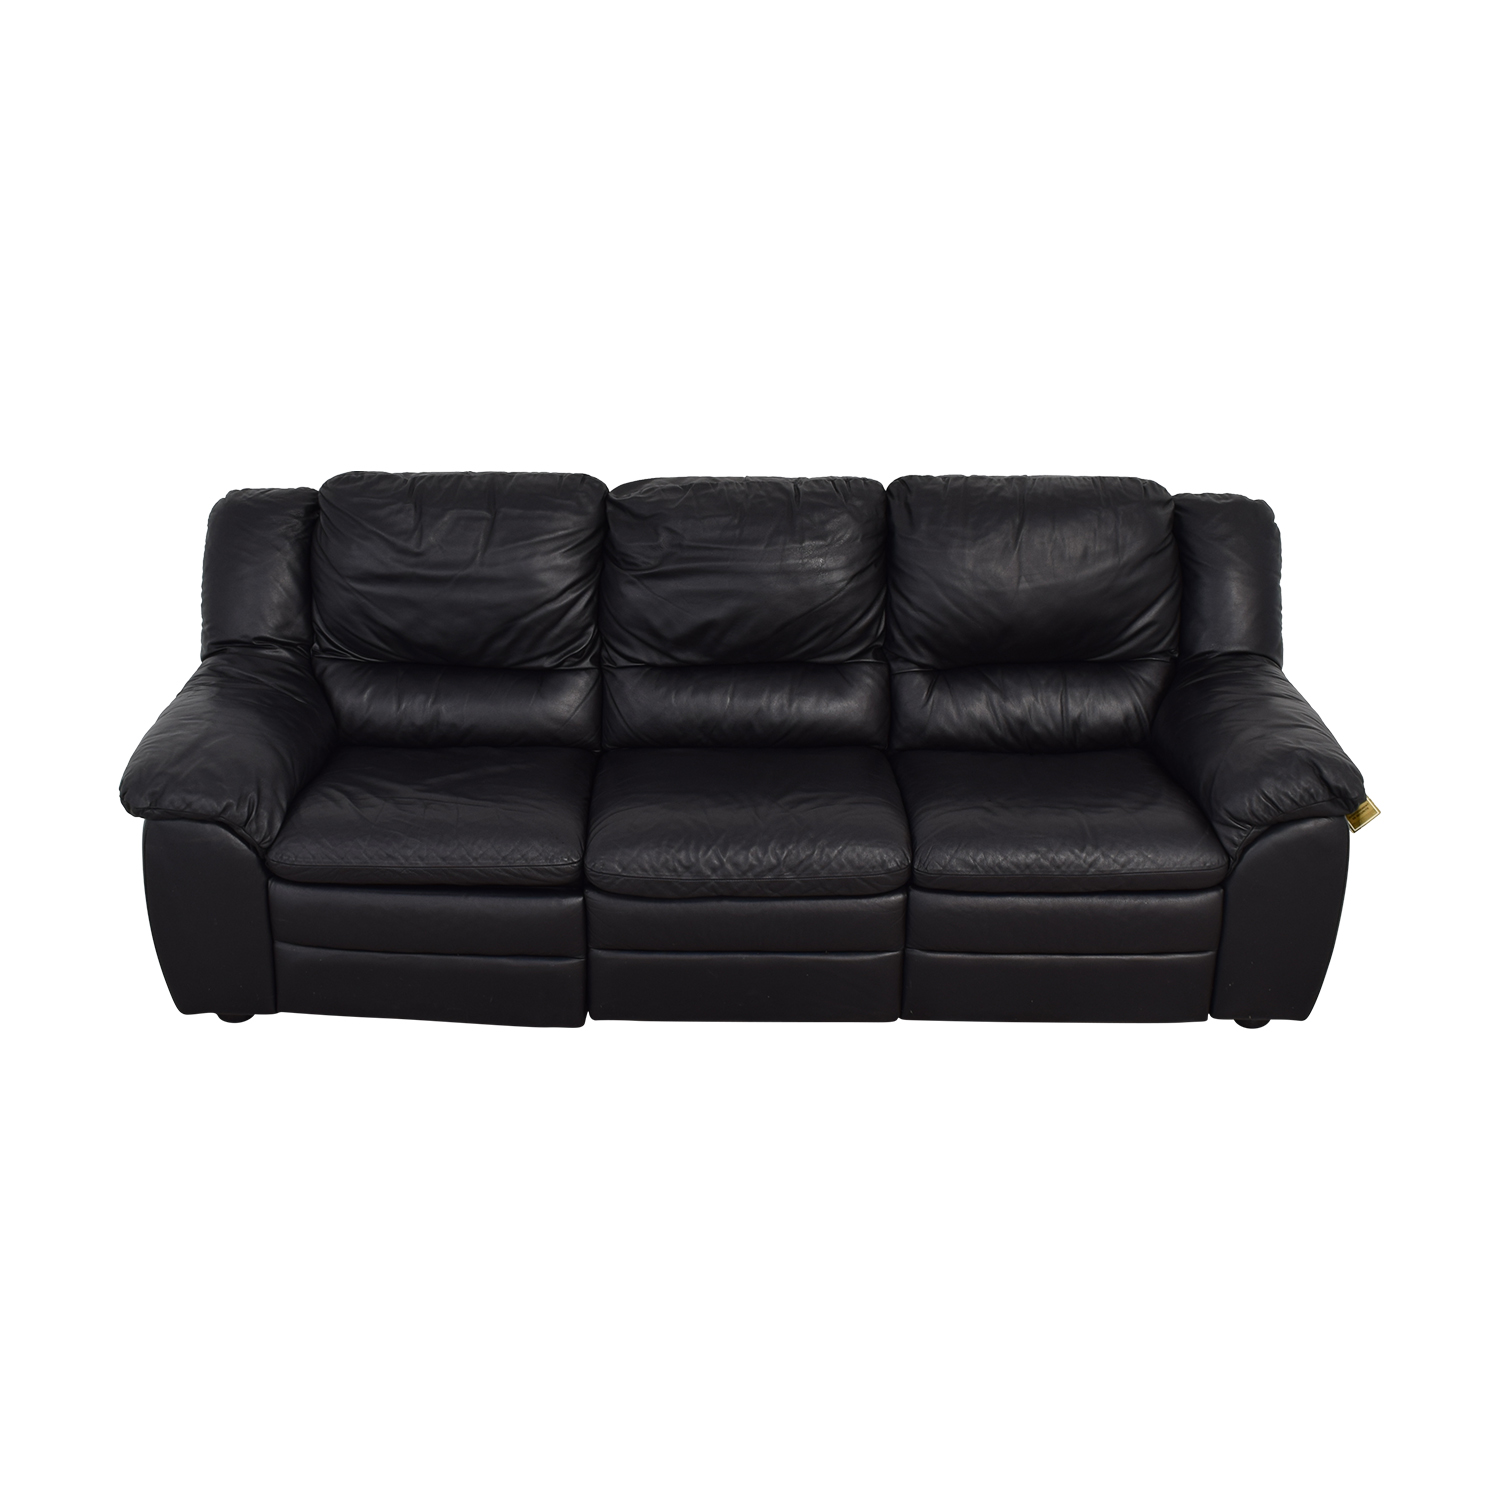 Natuzzi Natuzzi Black Leather Three-Cushion Recliner Sofa nyc